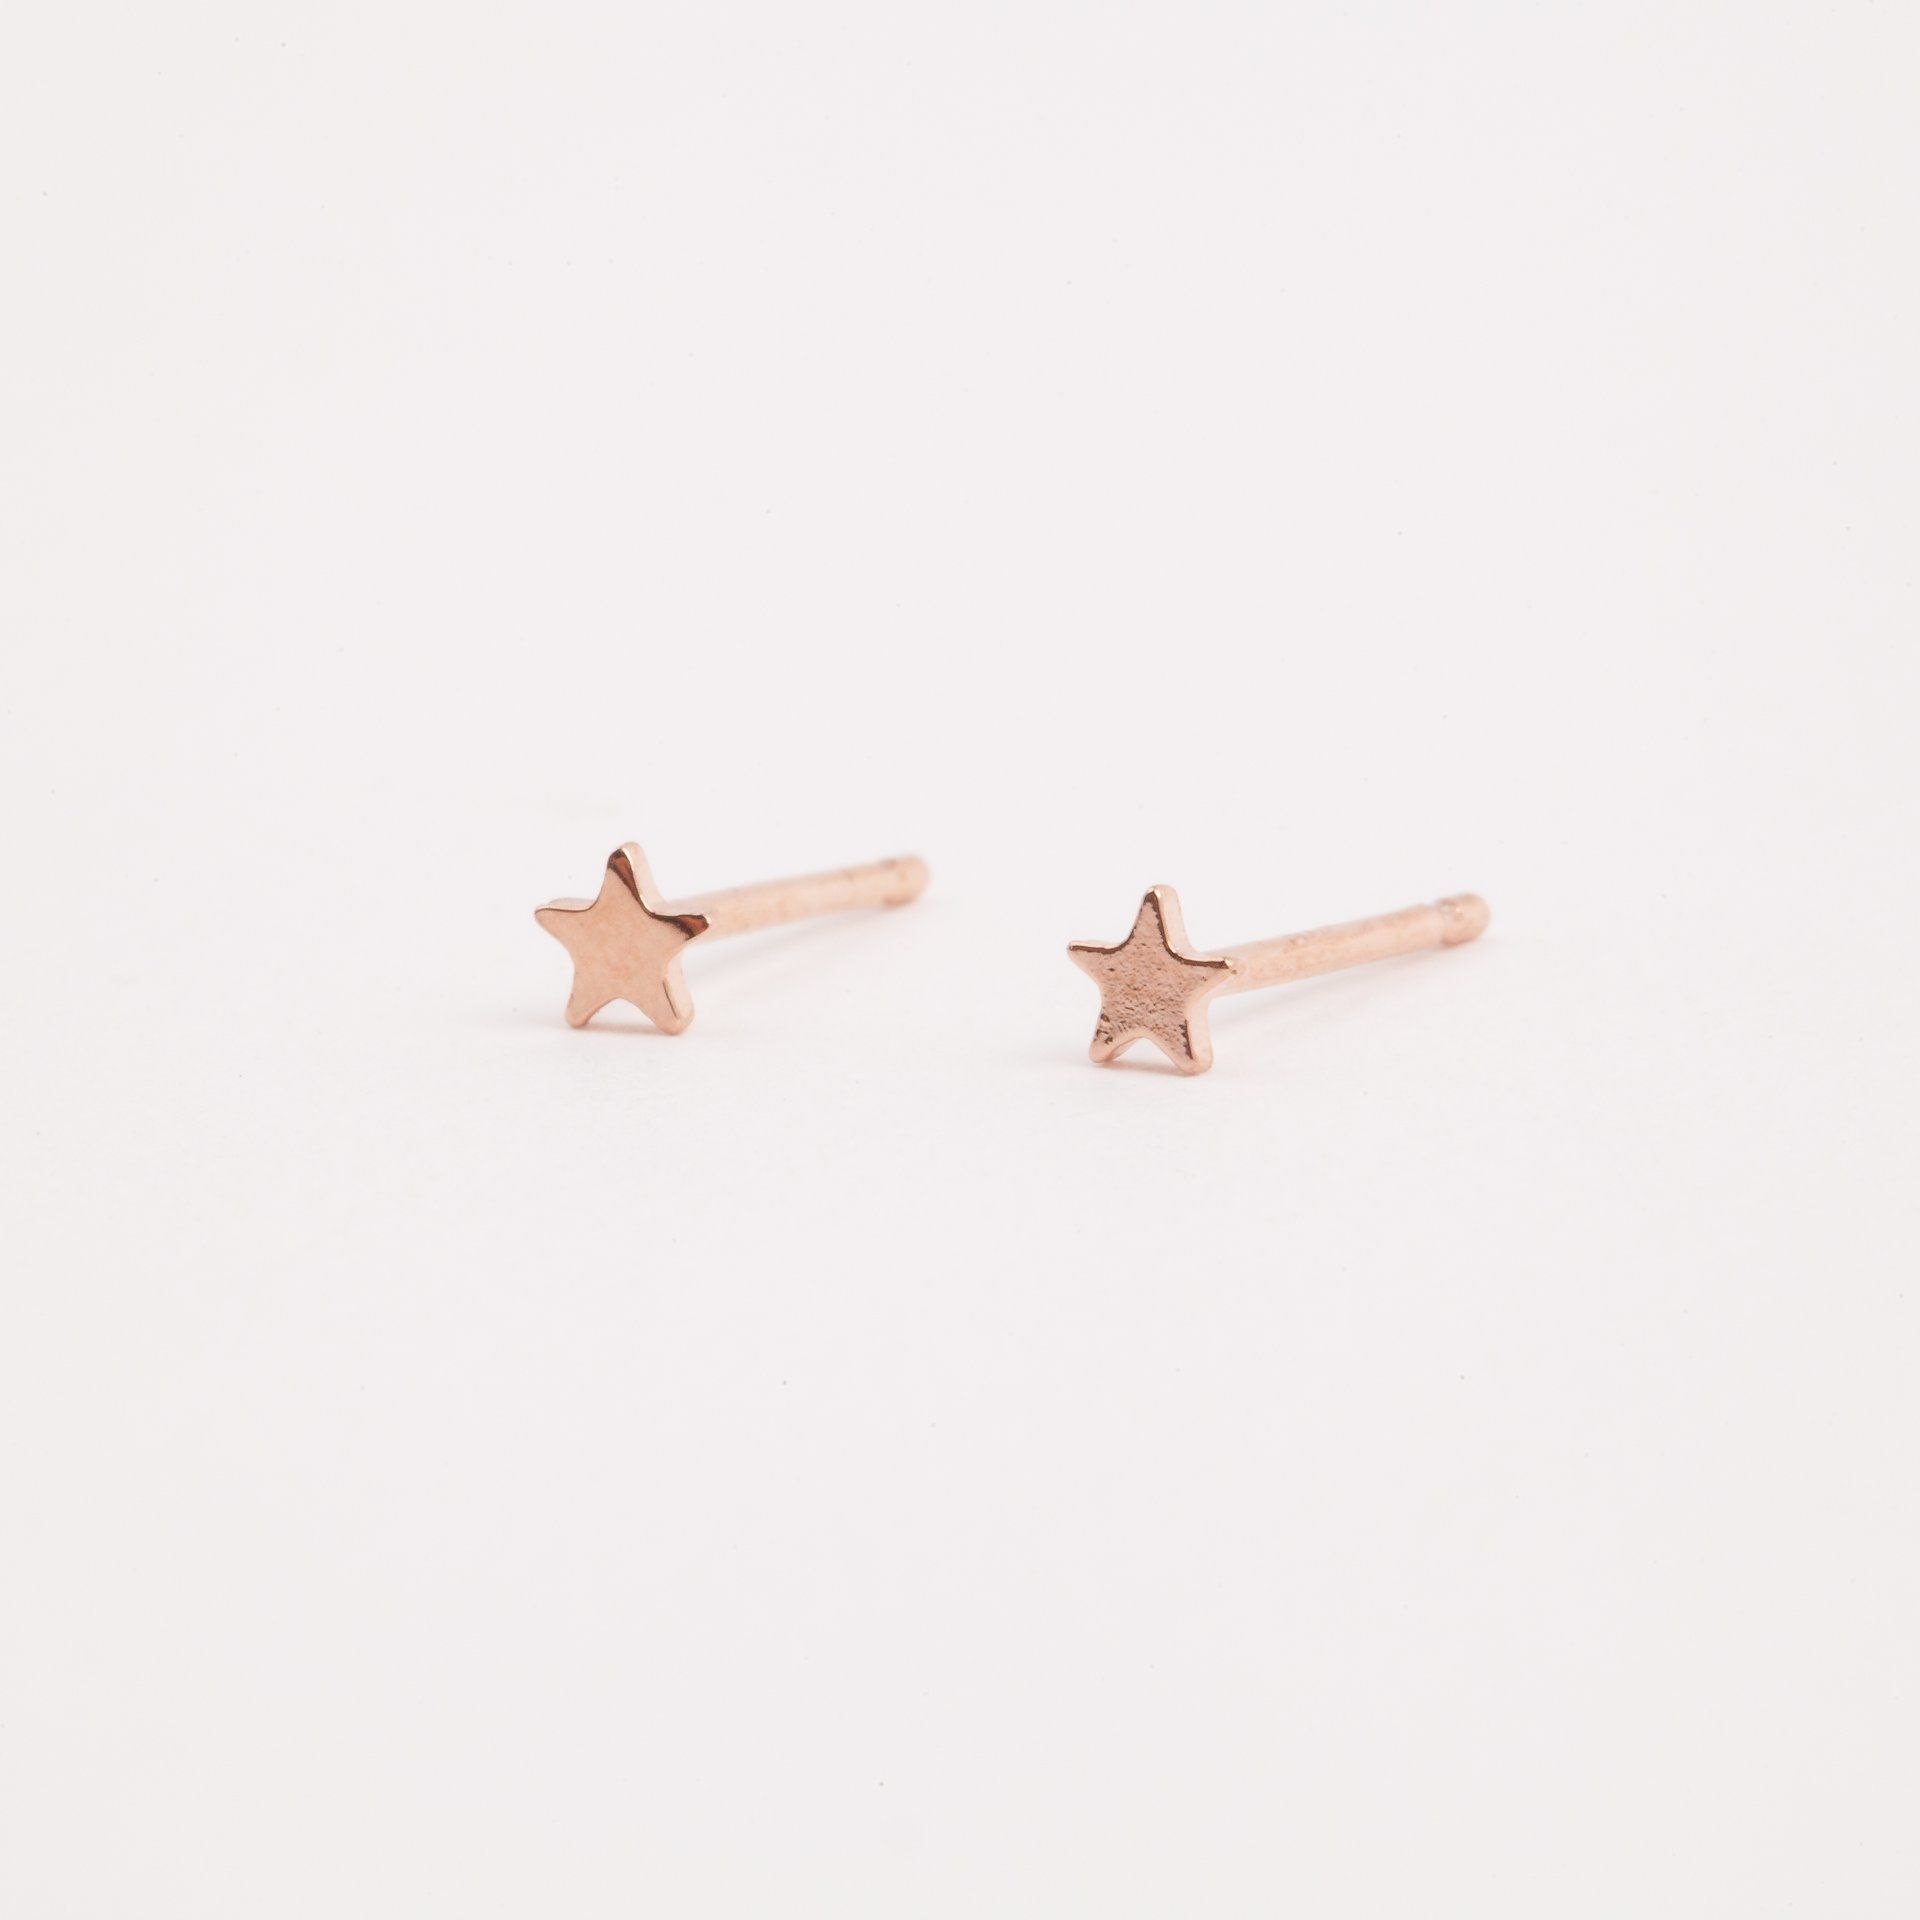 in ear star toy any essentials wear essential available shaped pinterest hoops for rose gold day are earrings tada lust signature silver pin list our